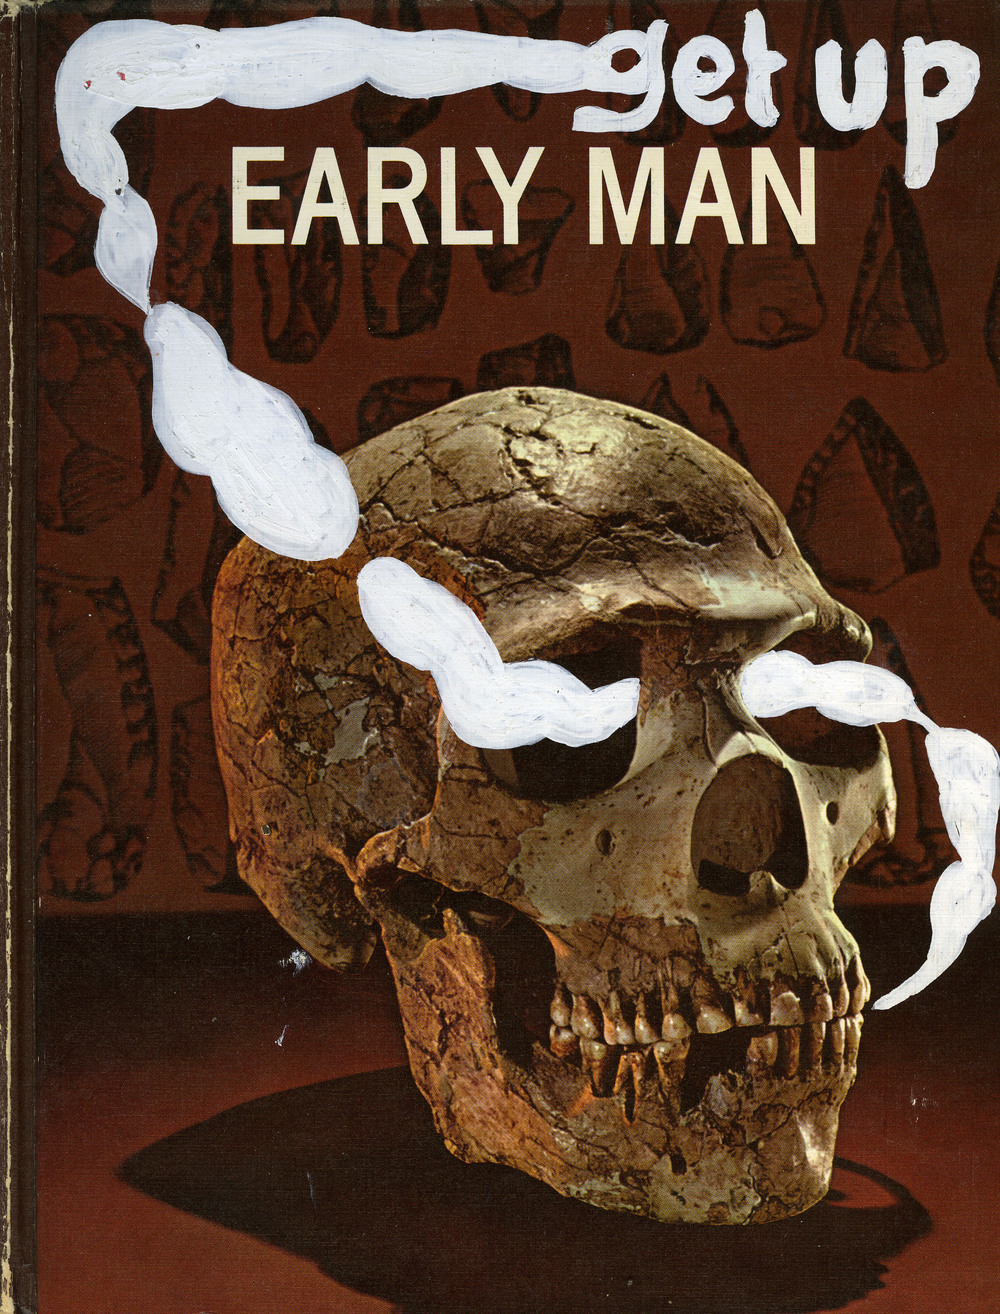 Get up early man, 2009.